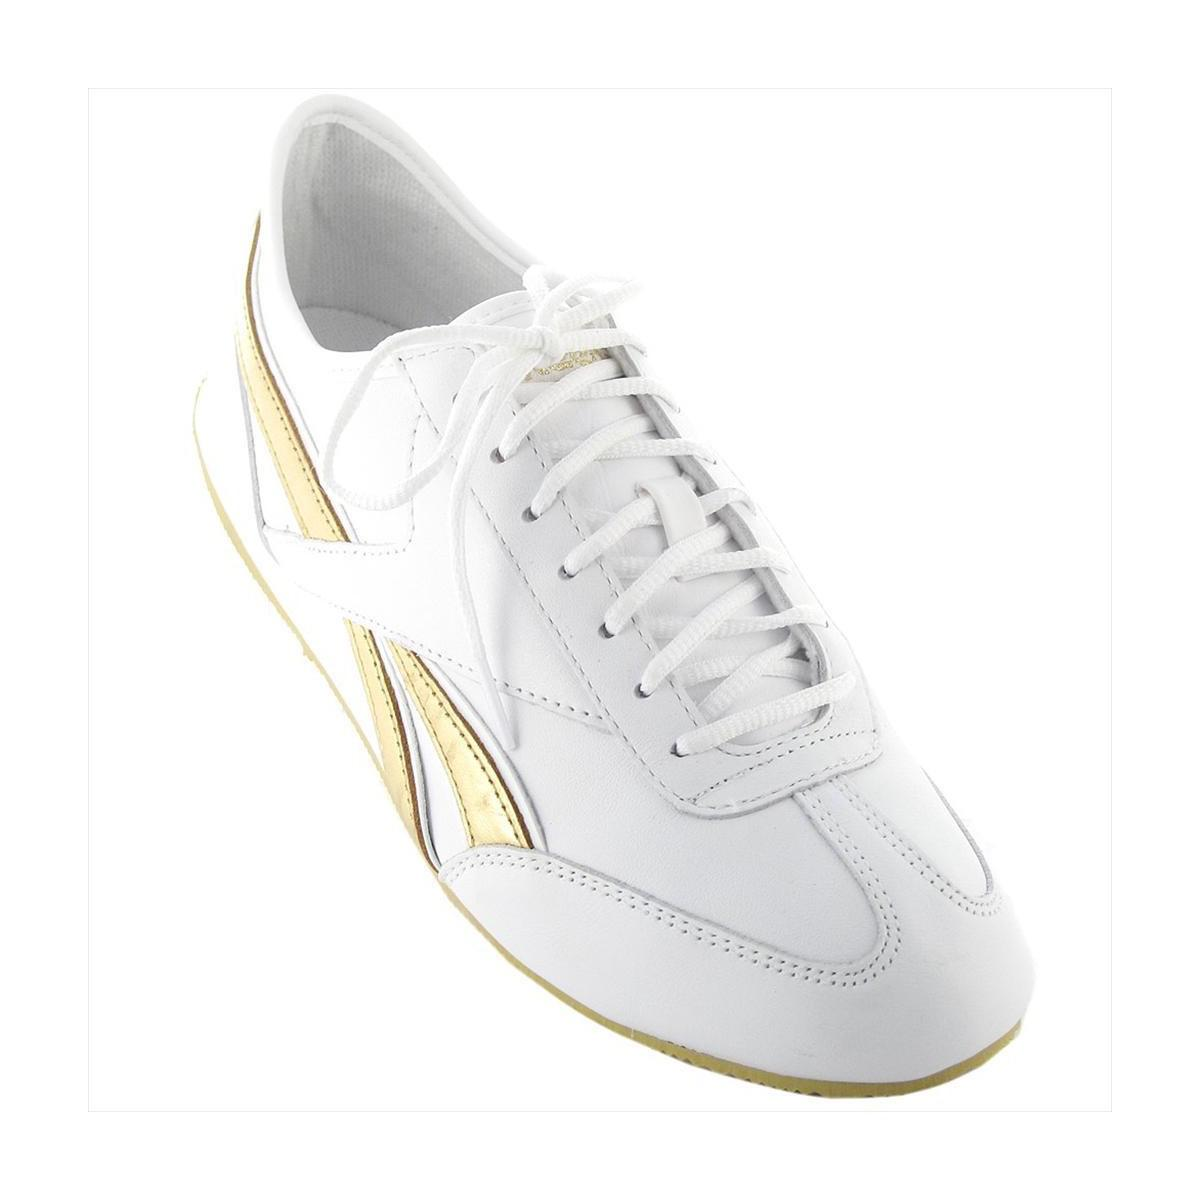 Reebok Raceday women's Shoes (Trainers) in Sale Get Authentic Cheap Sale Low Price Fee Shipping Cheap Sale Newest p1ivN